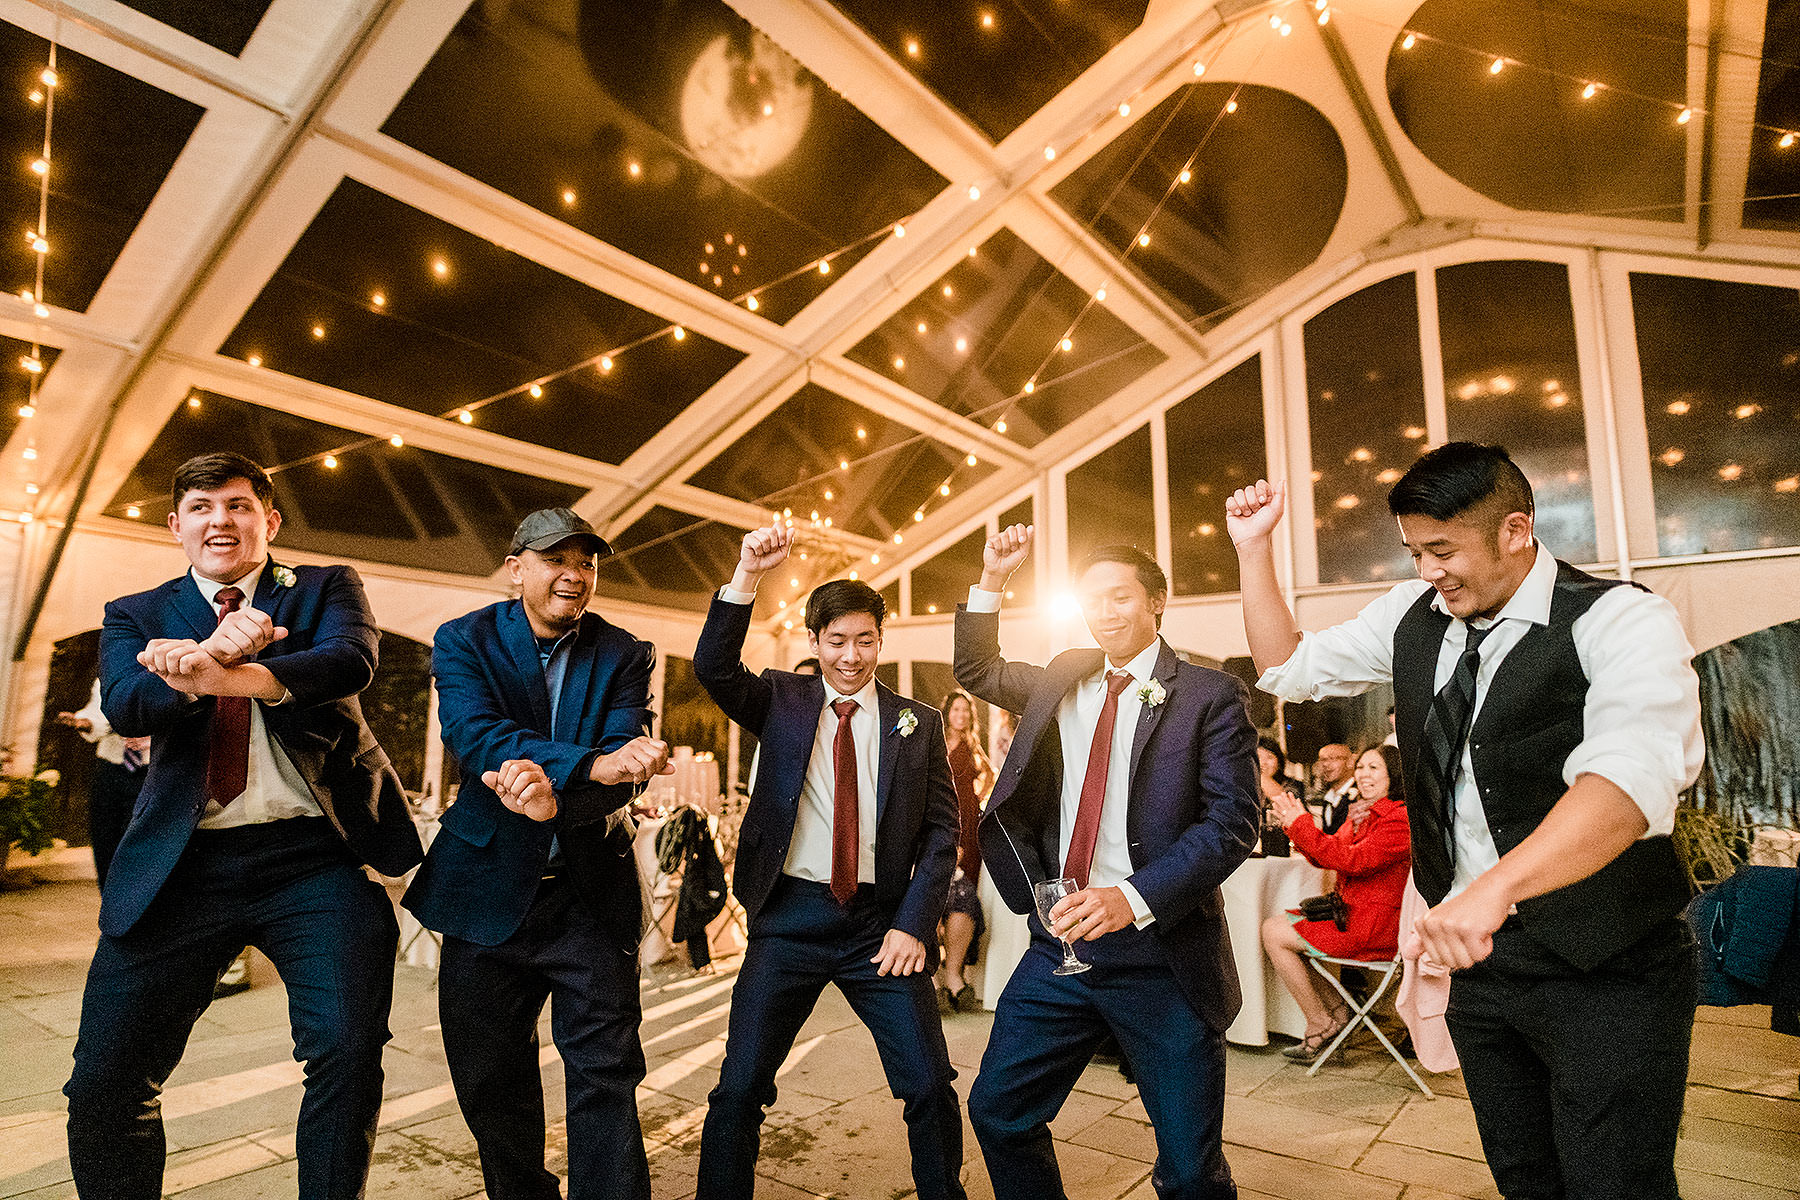 gangnam style dance at wedding by Washington DC Wedding Photographer Adam Mason